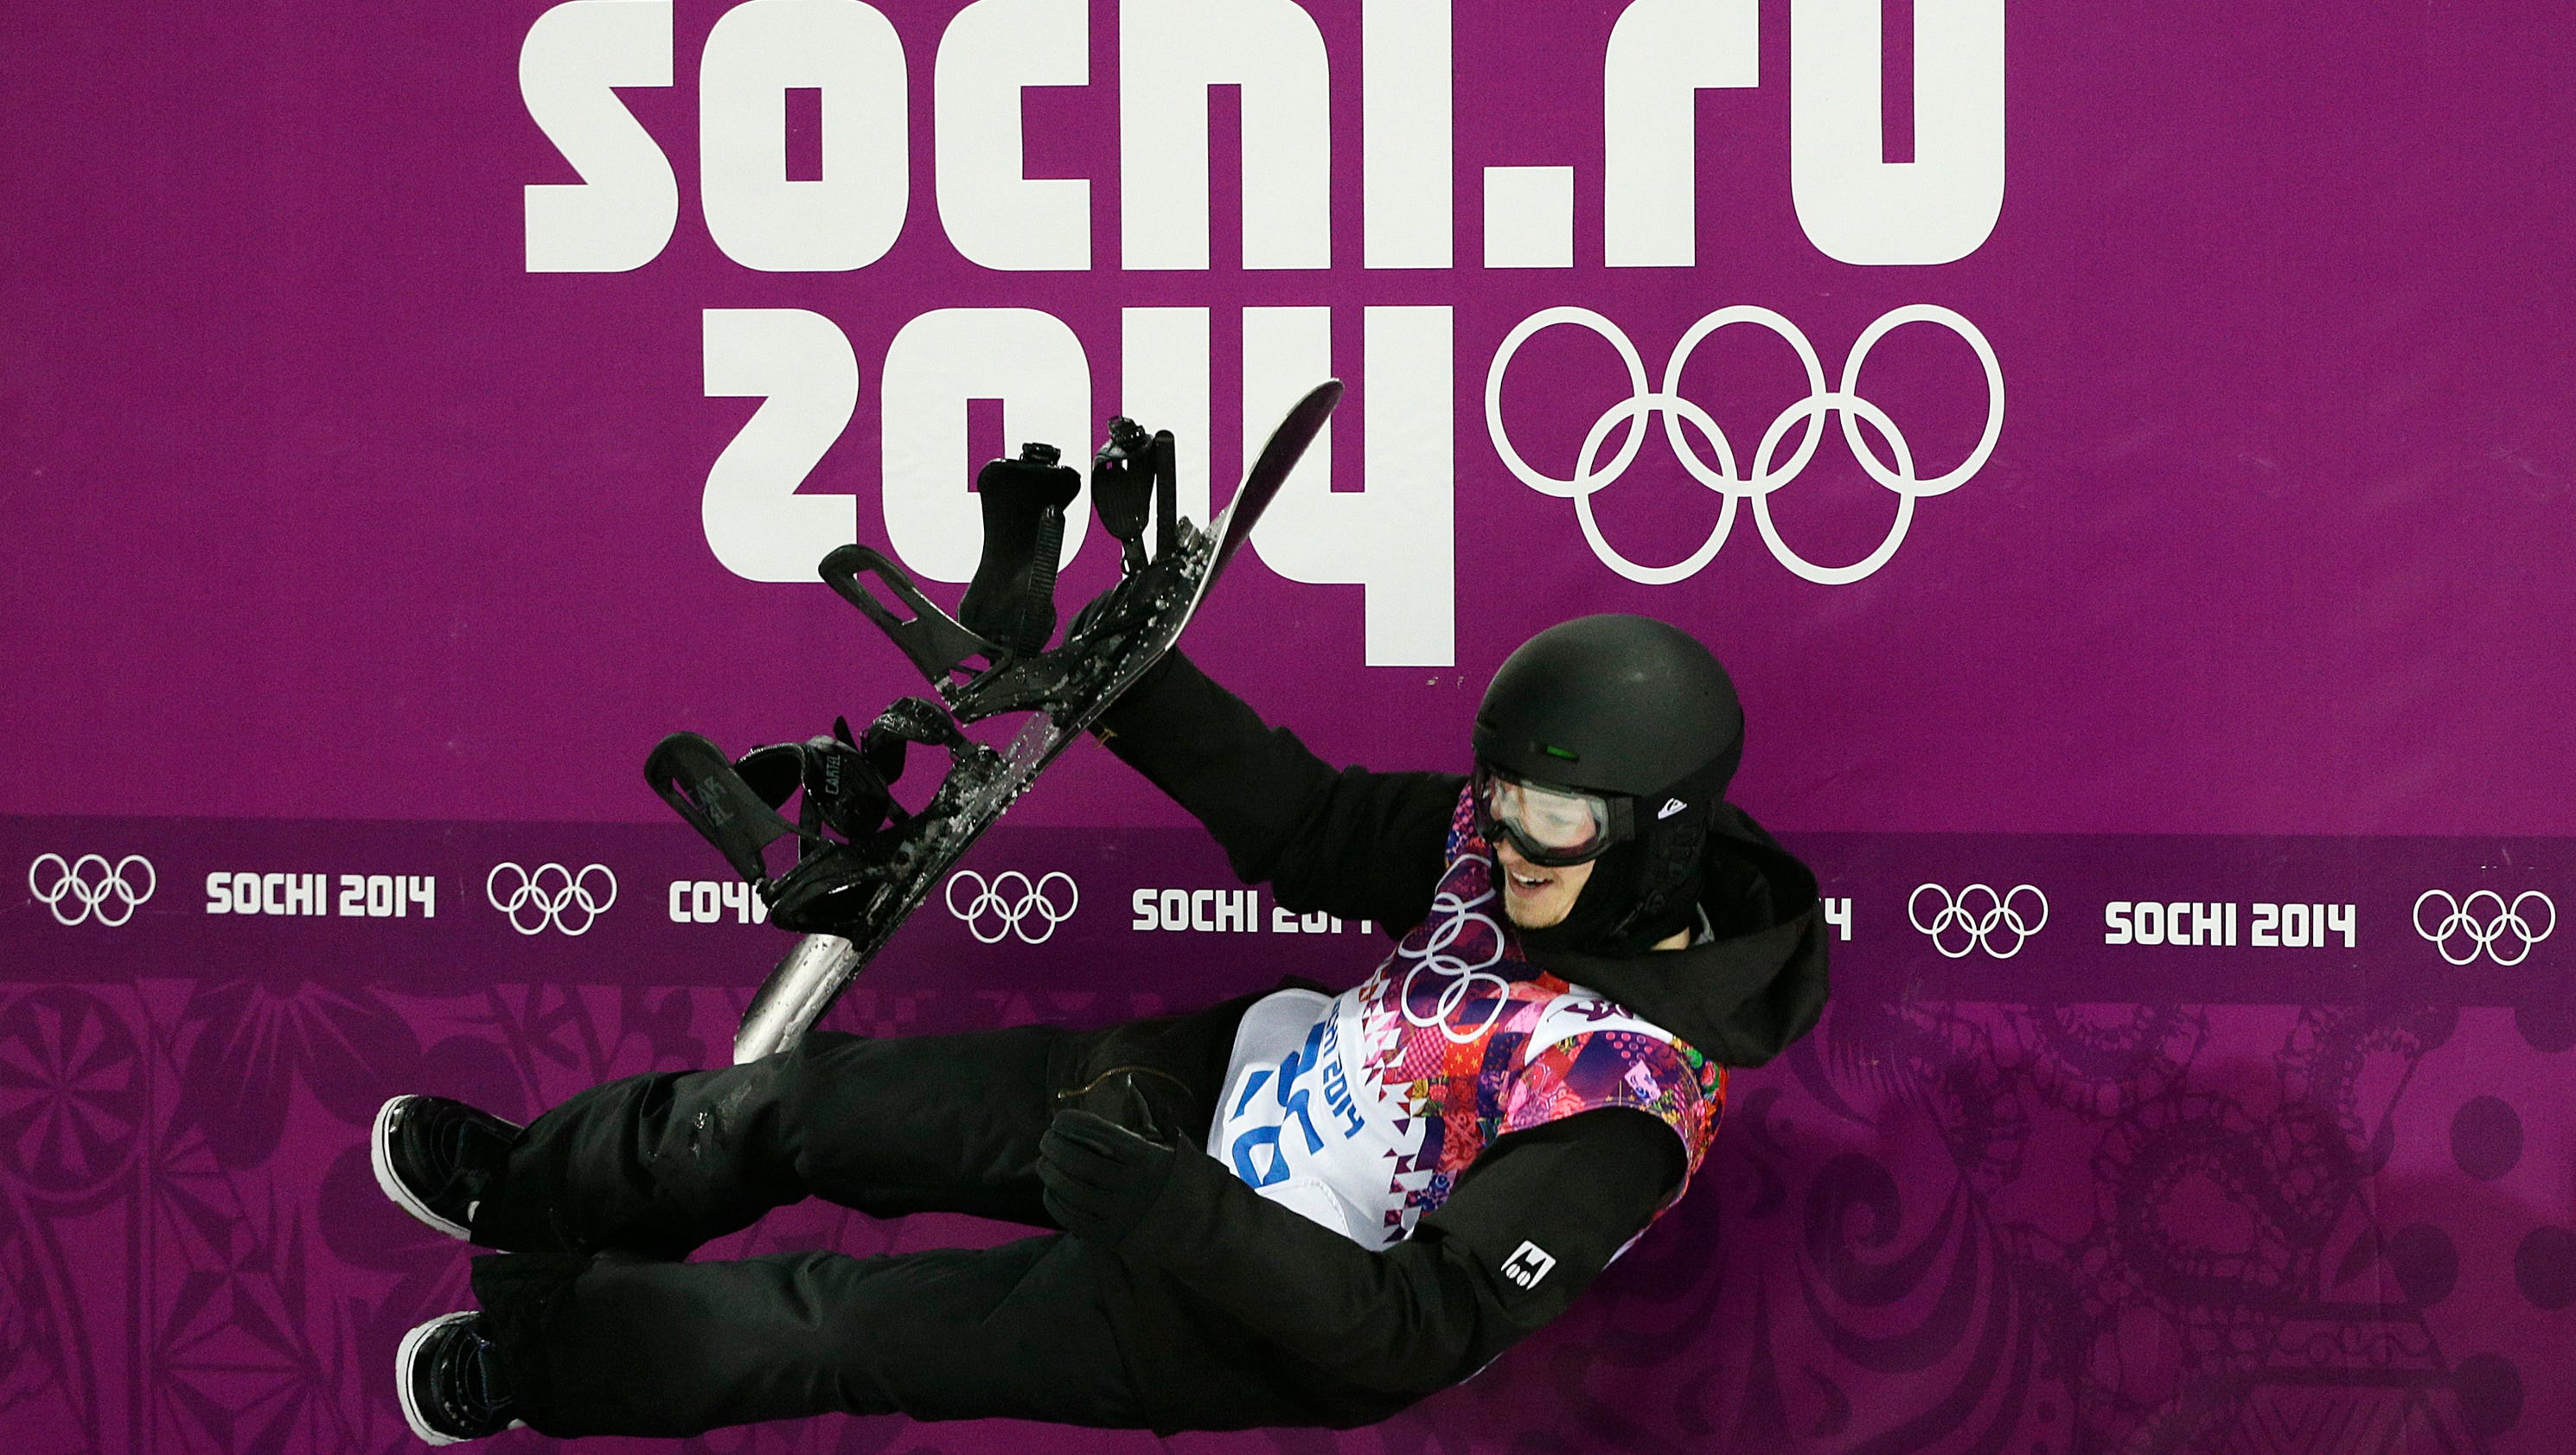 Olympic champ Iouri Podladtchikov suffers nasal fracture at X Games